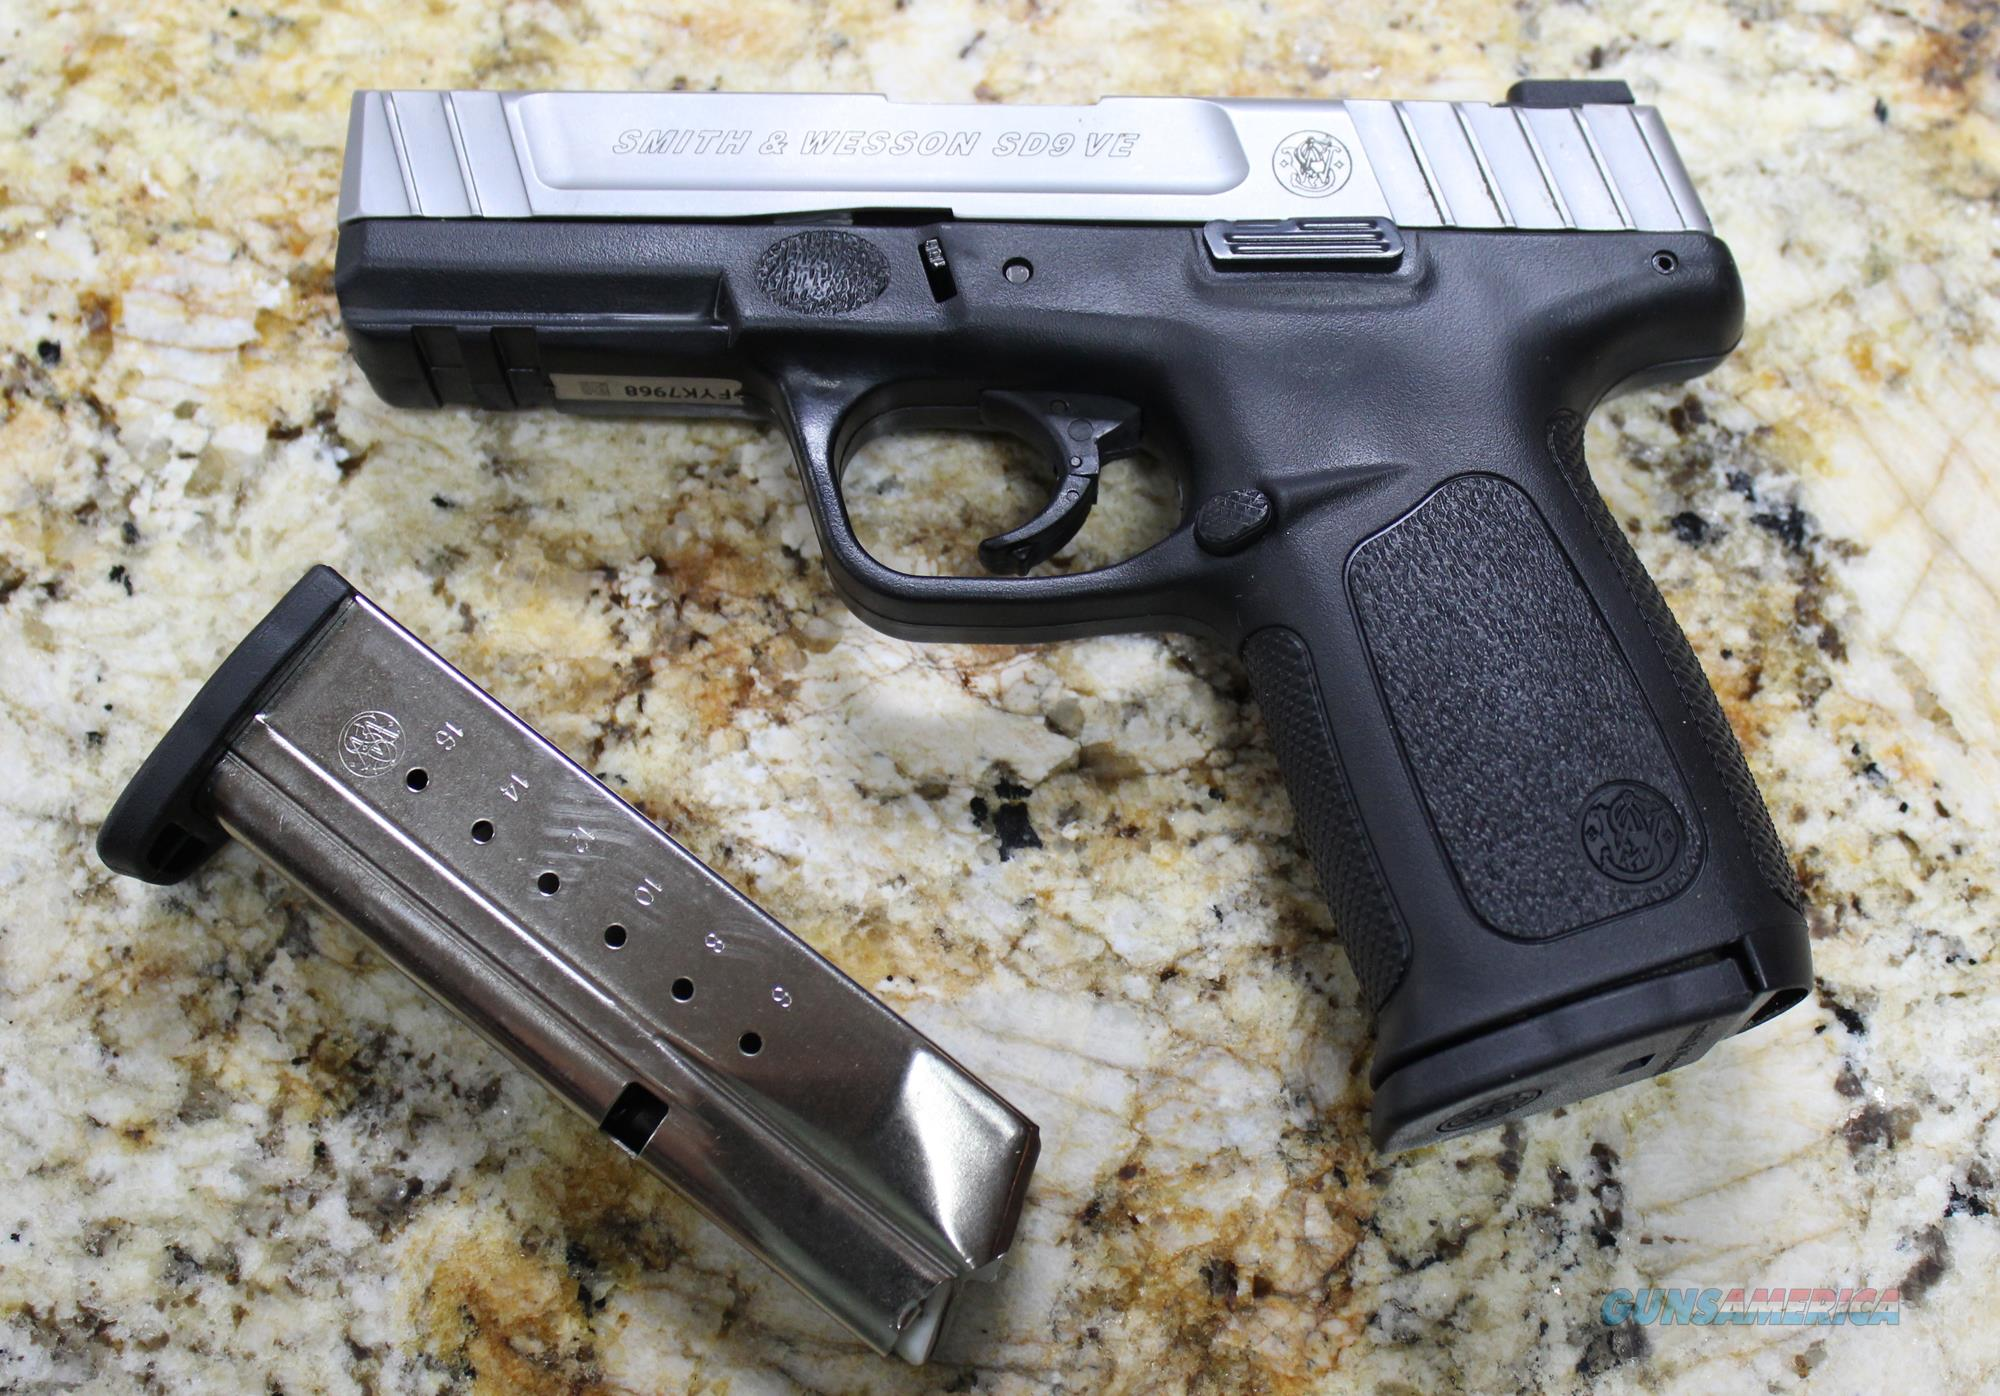 SMITH & WESSON SD9 VE 9MM LIKE NEW IN THE ORIGINAL BOX  Guns > Pistols > Smith & Wesson Pistols - Autos > Polymer Frame